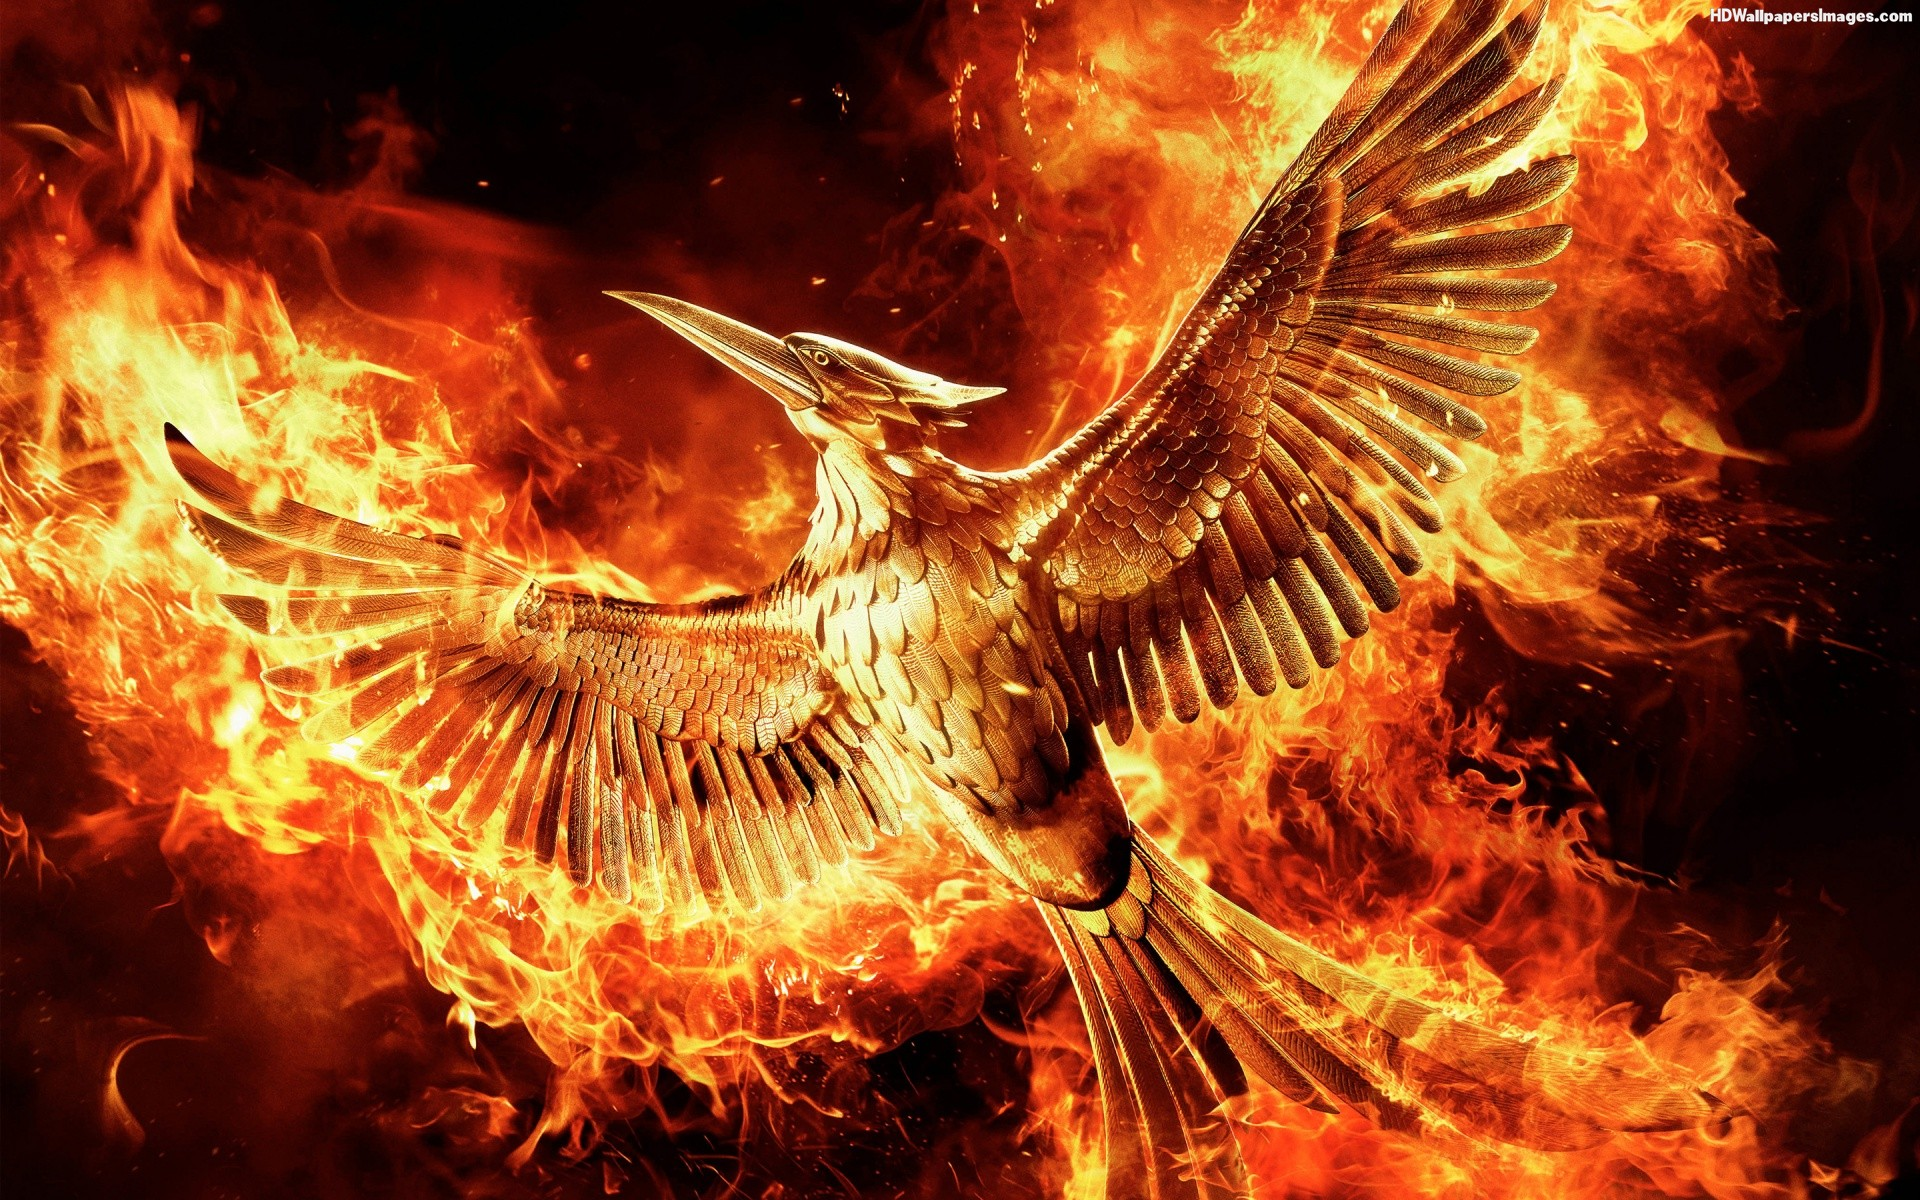 The Hunger Games Mockingjay Part 2 Hd Wallpapers Download